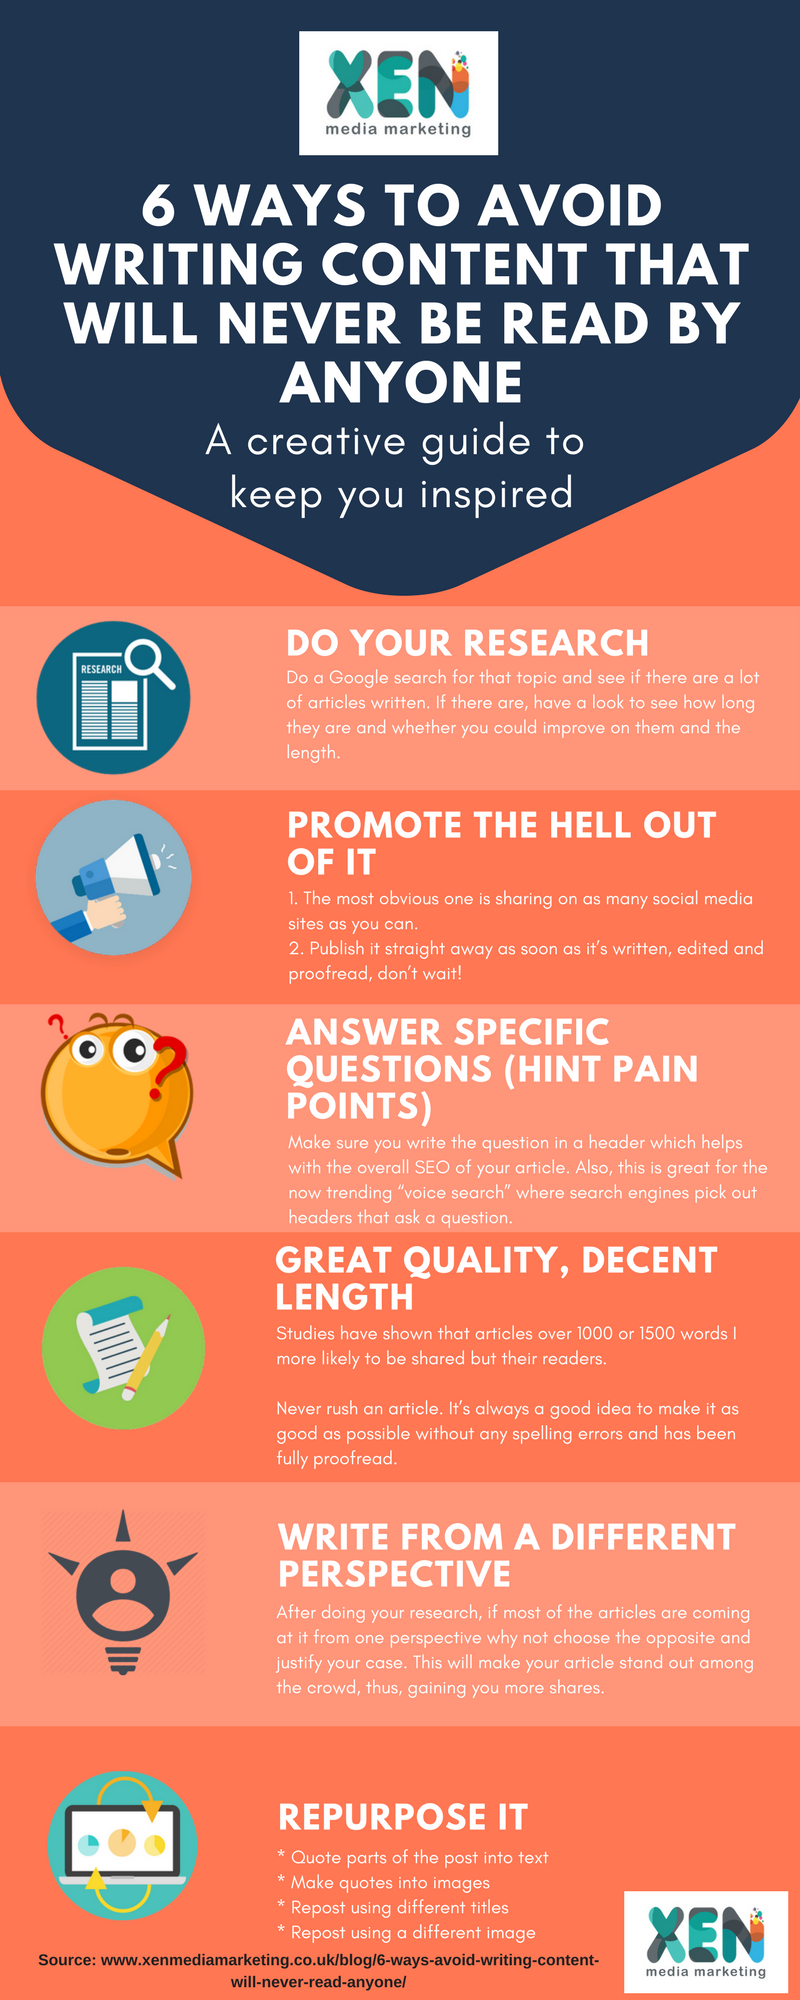 6 Ways To Avoid Writing Content That Will Never Be Read By Anyone infographic